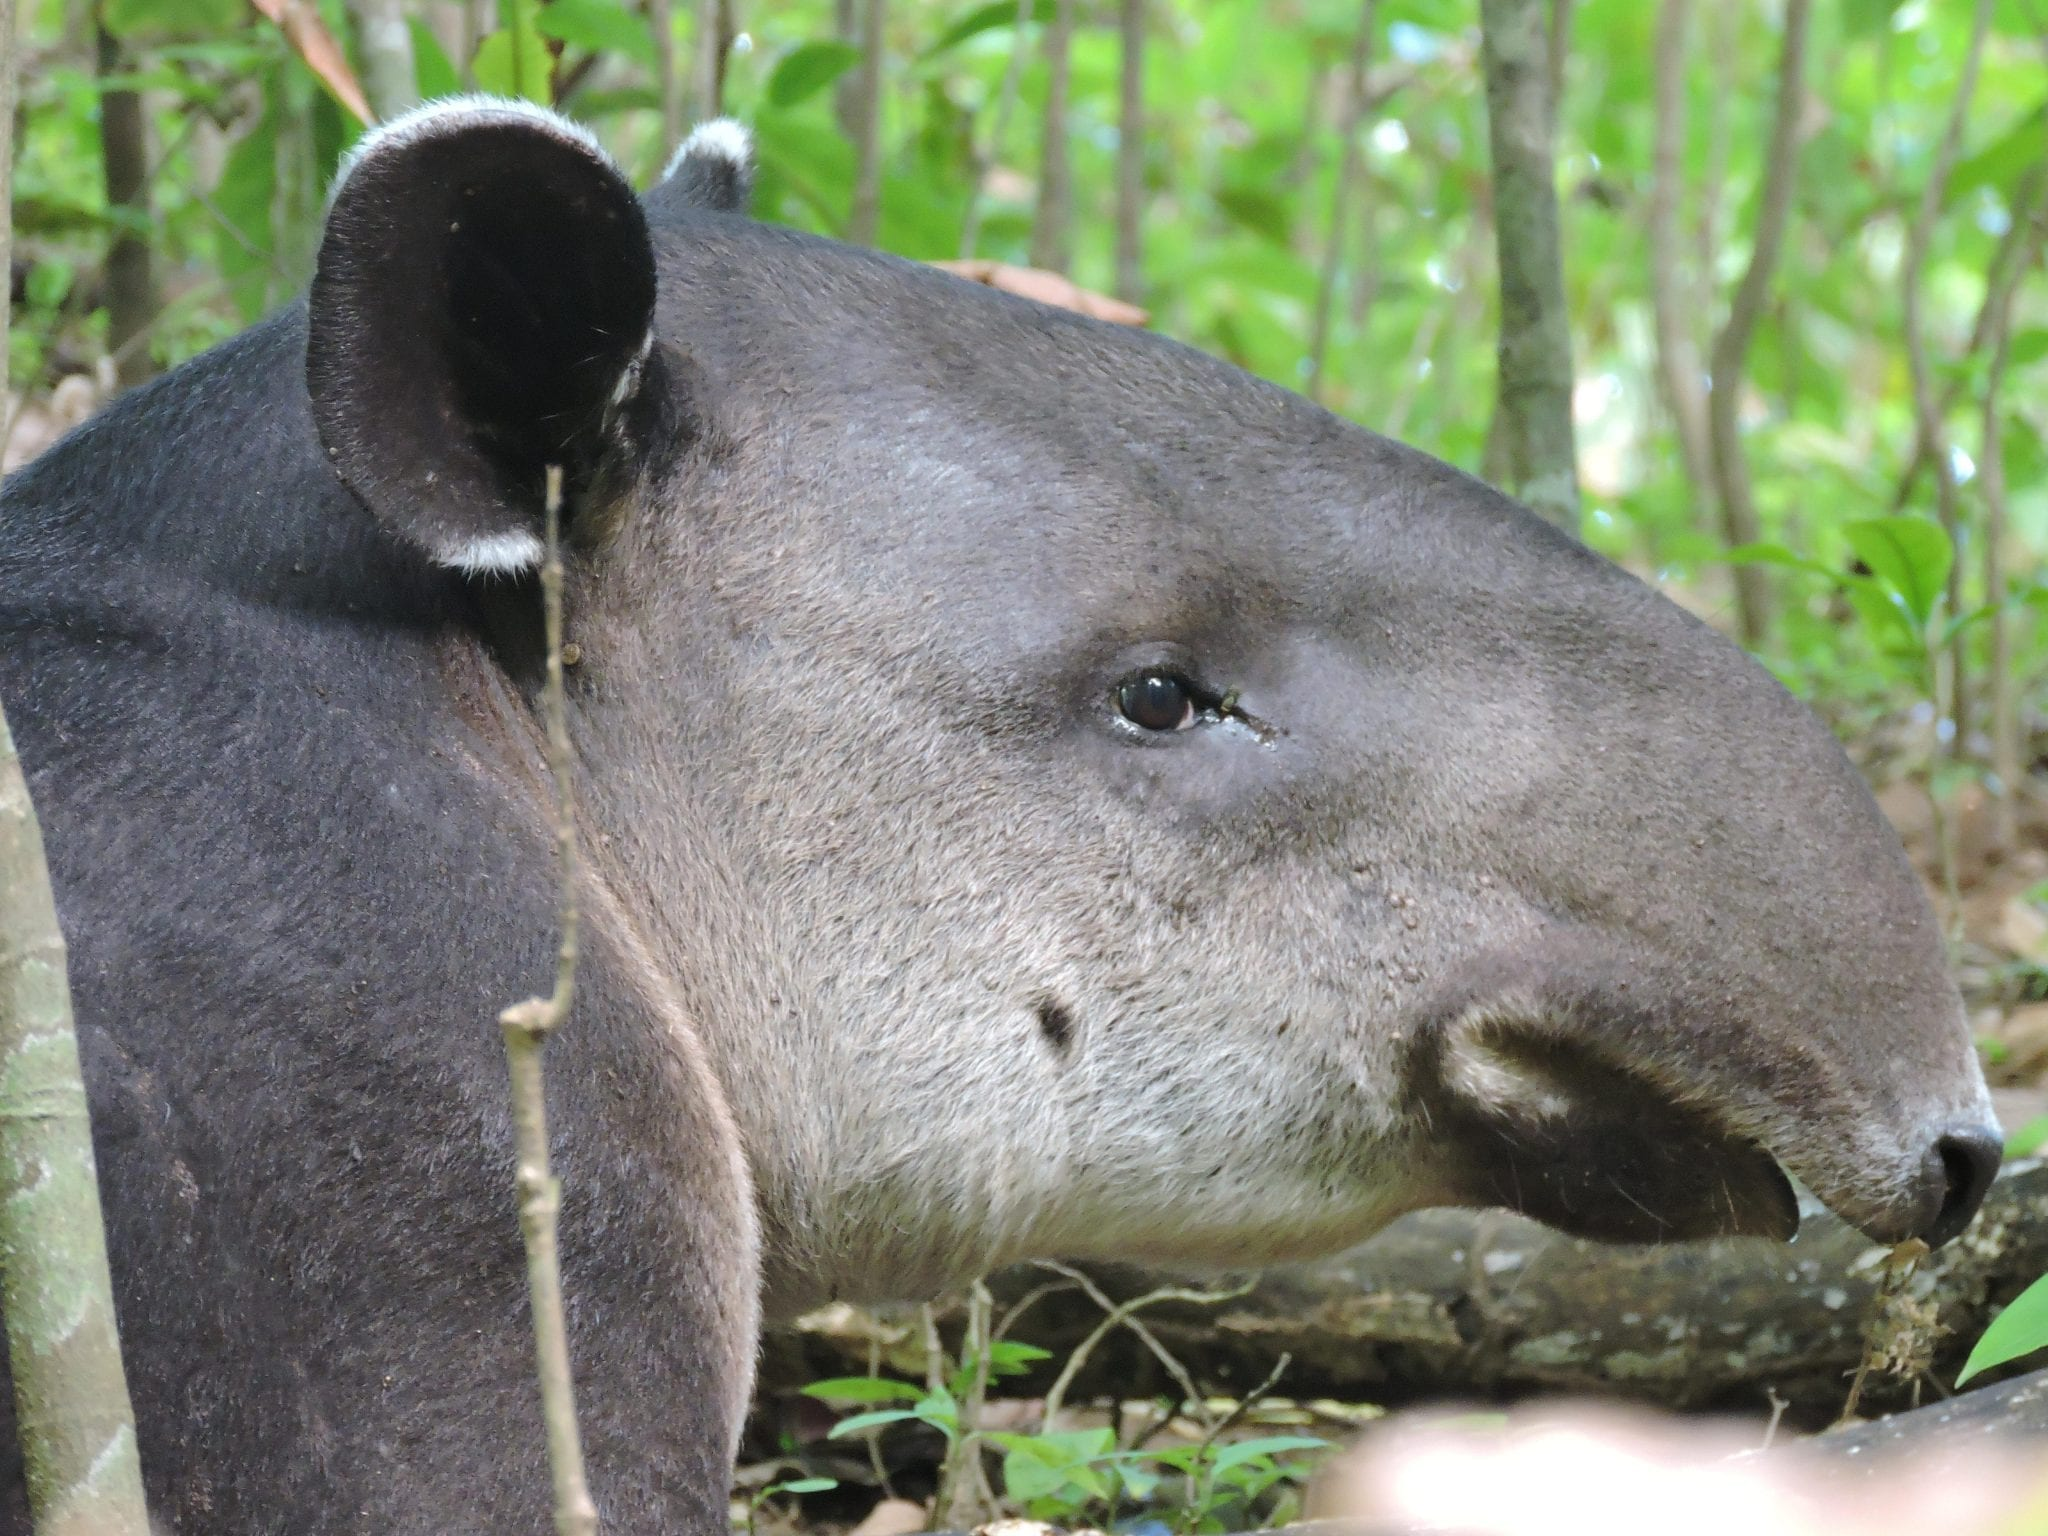 One of the treasures of Corcovado National Park is tapir. The best chances to see it are given on 2 and 3 days tours in Corcovado